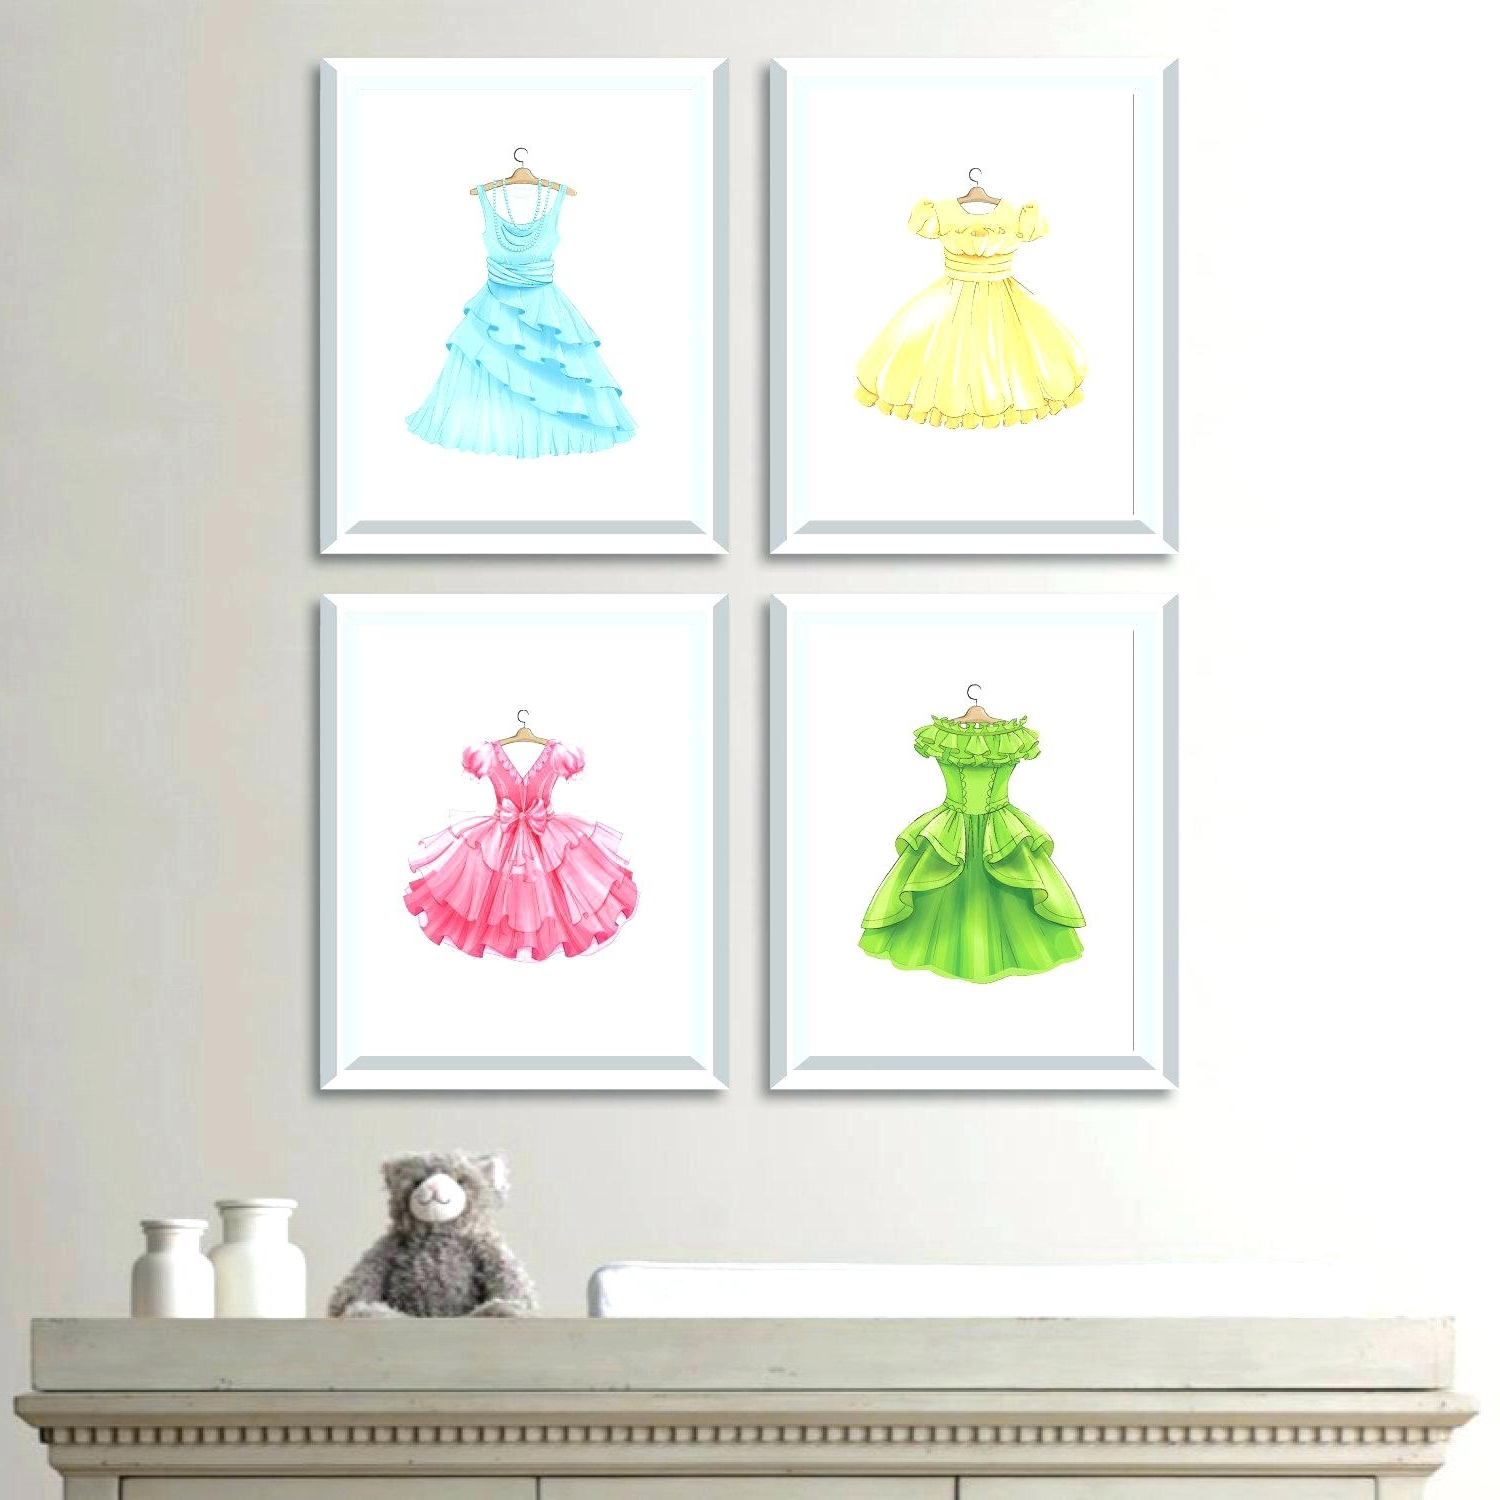 Disney Princess Wall Decals For Kids Rooms Amazing Ideas Princess For Well Liked Princess Canvas Wall Art (View 2 of 15)